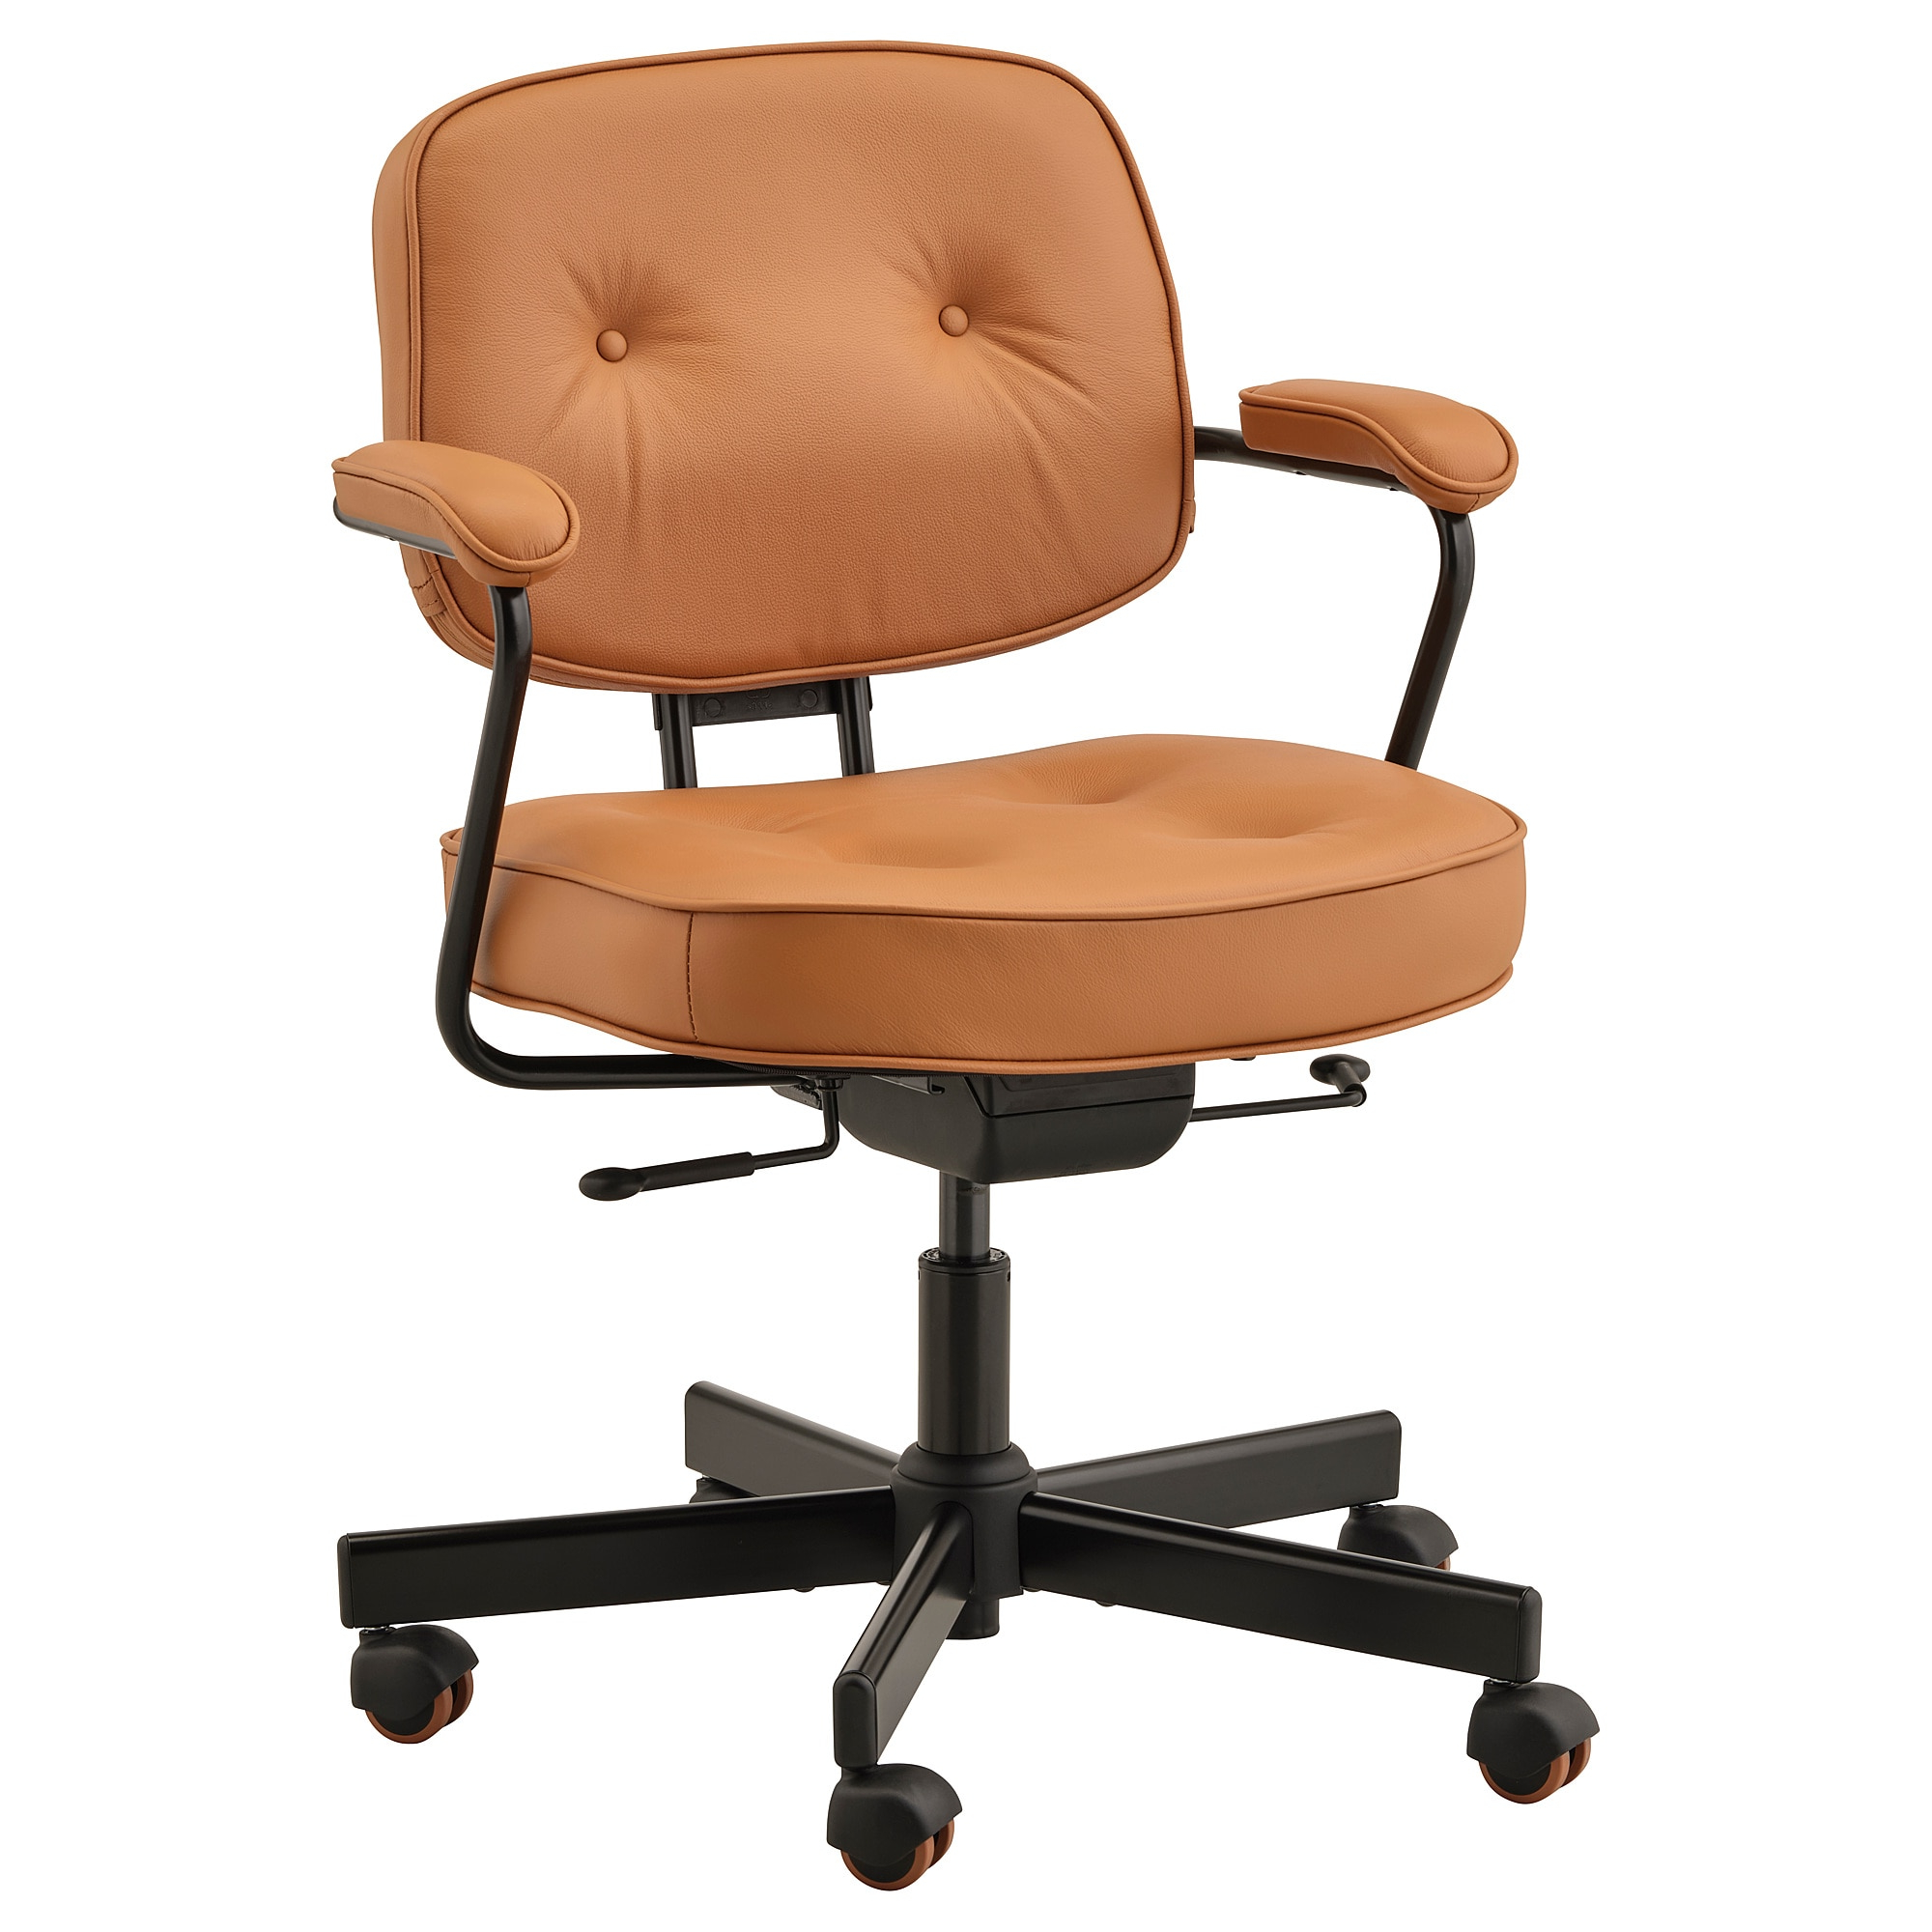 Office Chairs J7do Office Chair Alefjà Ll Grann Golden Brown